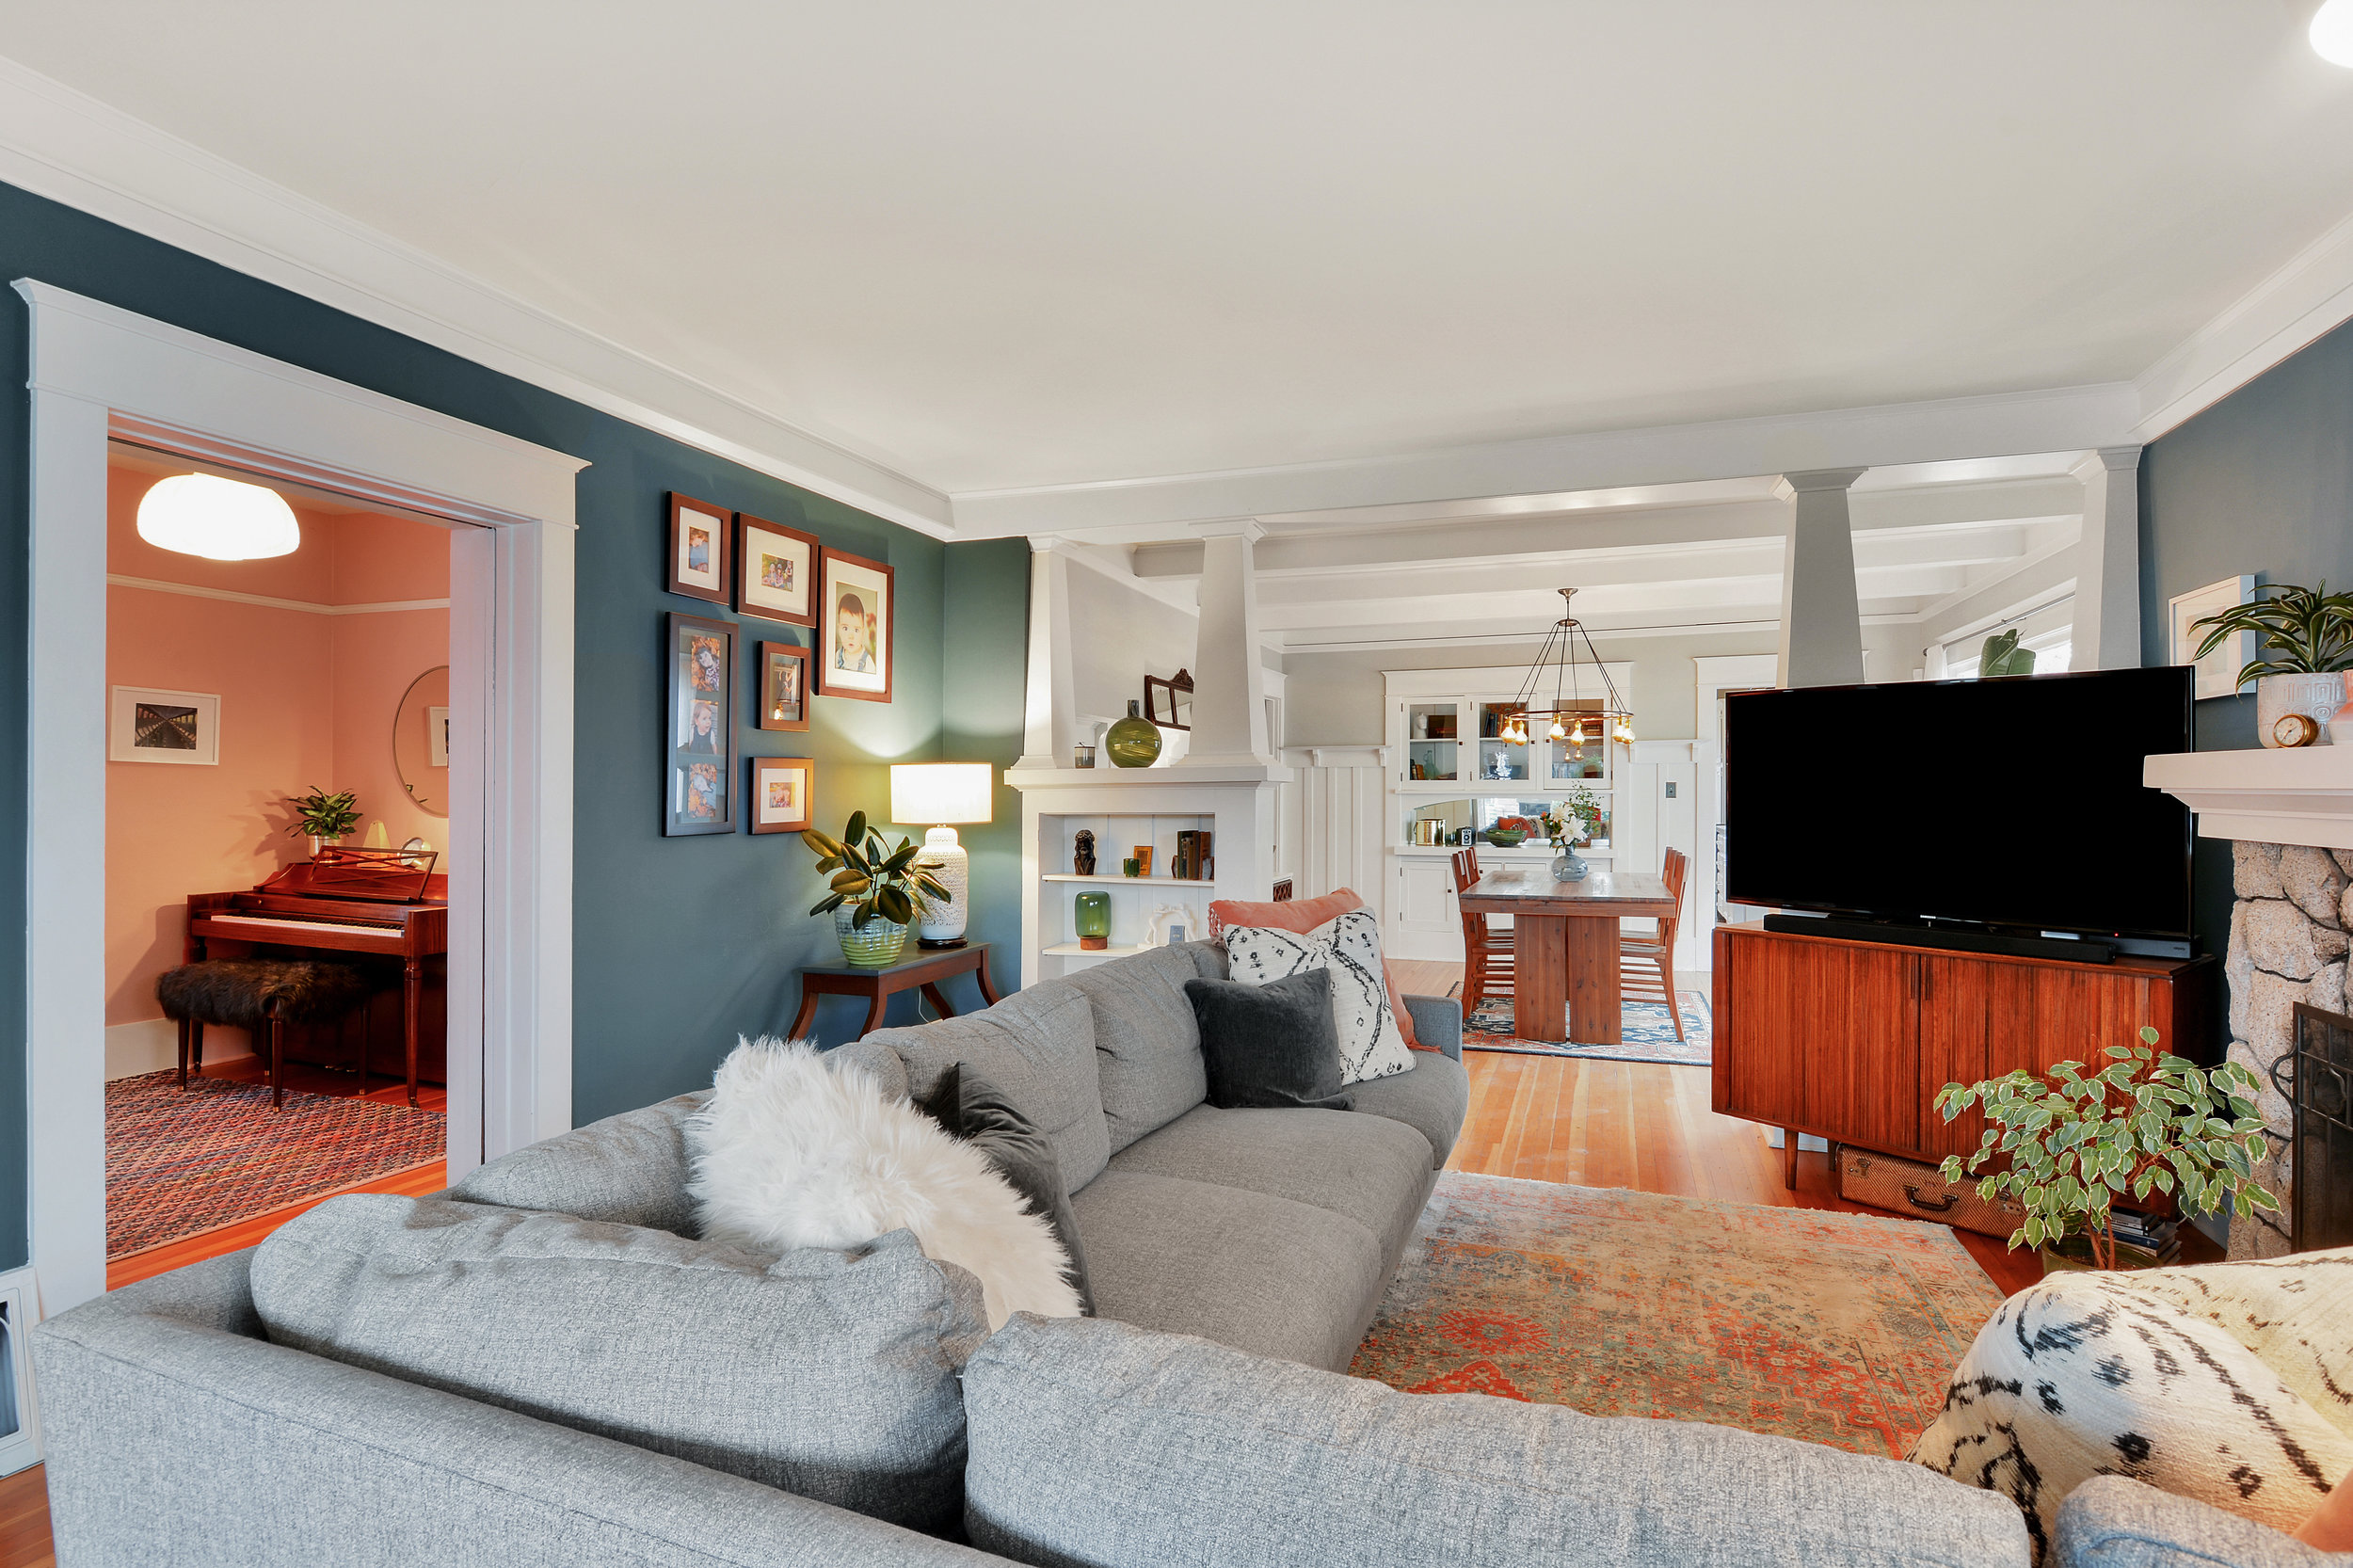 The living room (shown here with pocket door open) flows into the dining room. Notice the built-in shelves and picture rail.